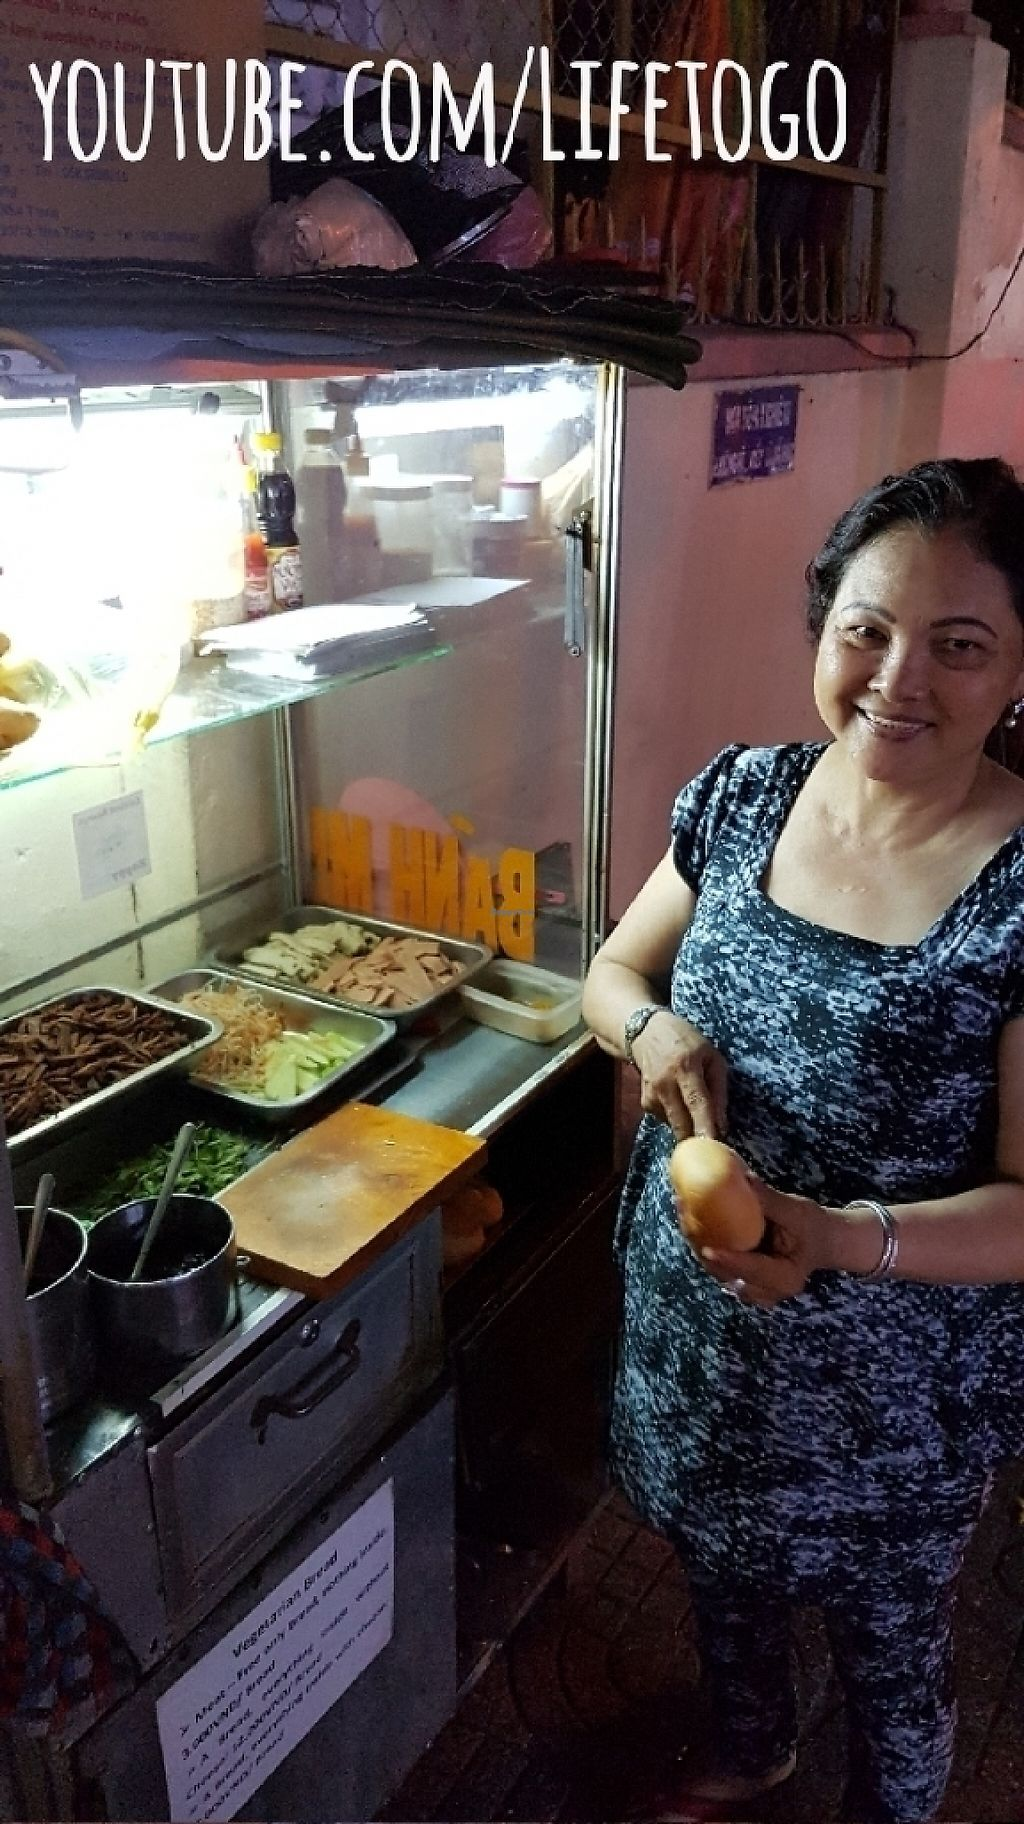 """Photo of Chay Banh Mi - Food Cart  by <a href=""""/members/profile/Lifetogo"""">Lifetogo</a> <br/>Great vegan fast food. Ordered 7 in one evening! ? <br/> May 8, 2017  - <a href='/contact/abuse/image/30933/257123'>Report</a>"""